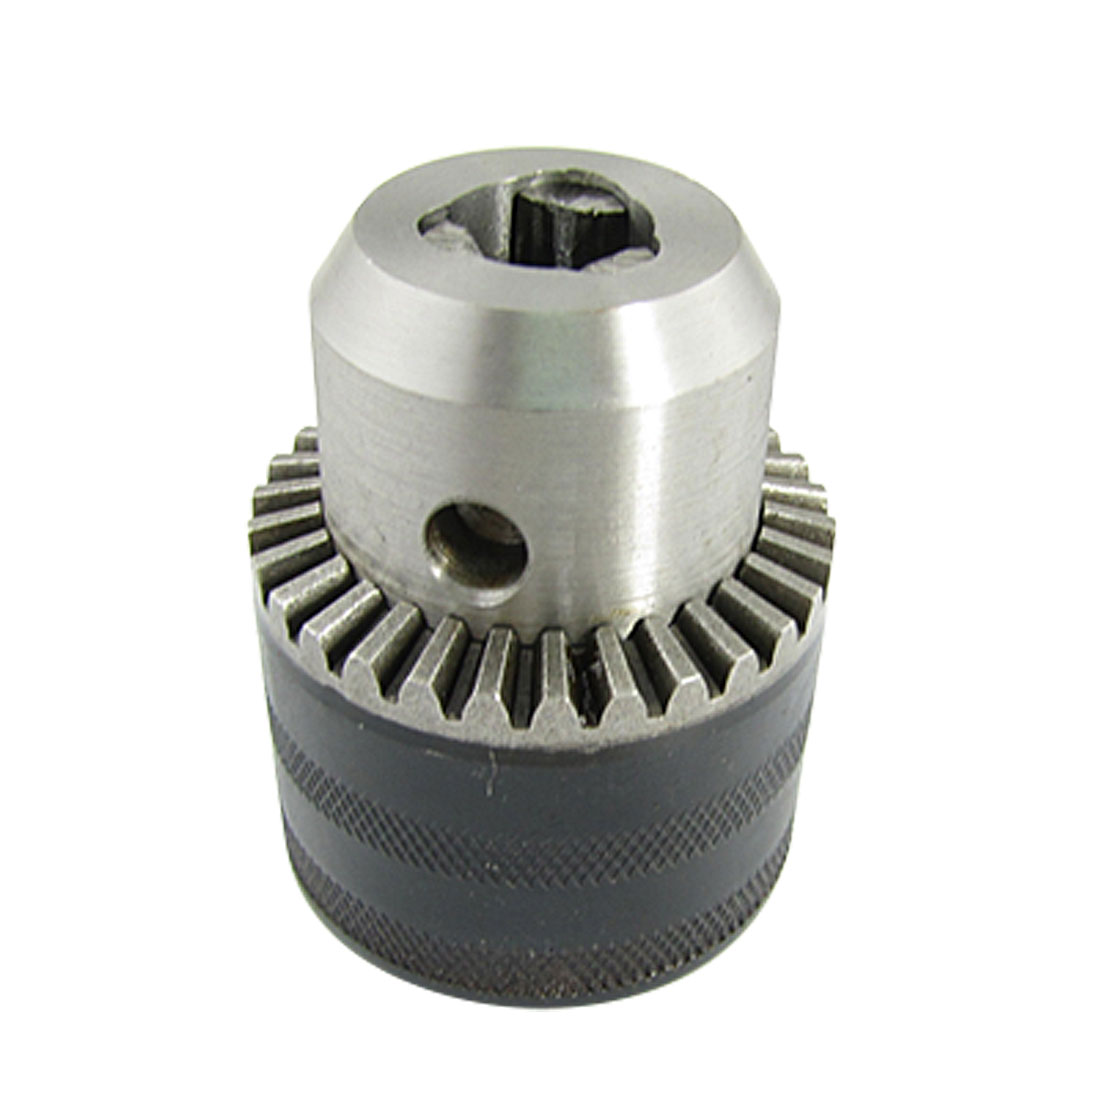 Key Type 3.0-16mm Capacity Taper Drill Chuck